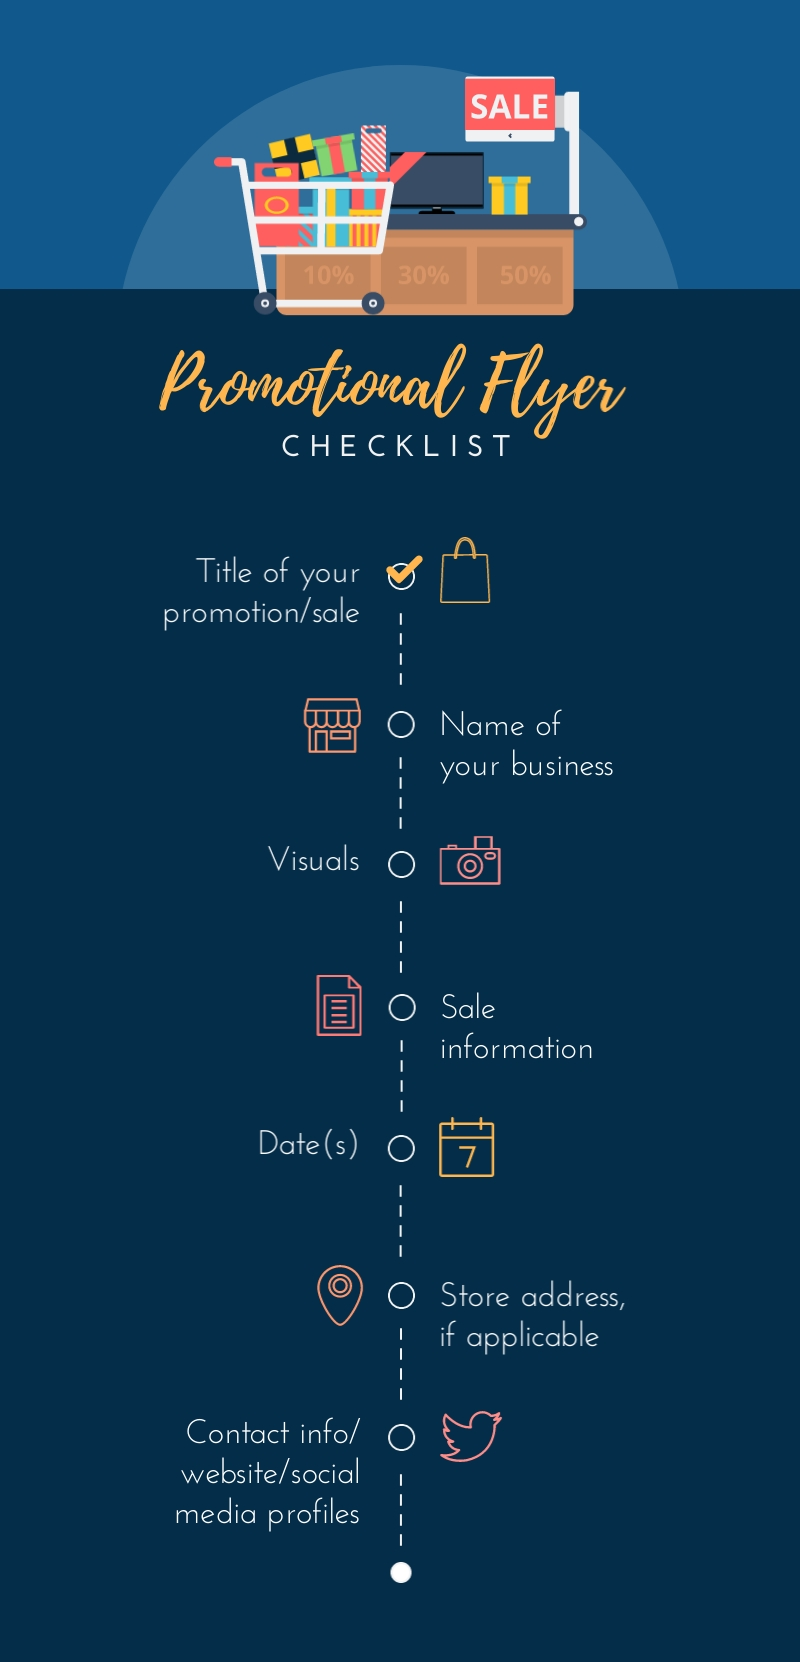 Promotional Flyer Checklist - Infographic Template